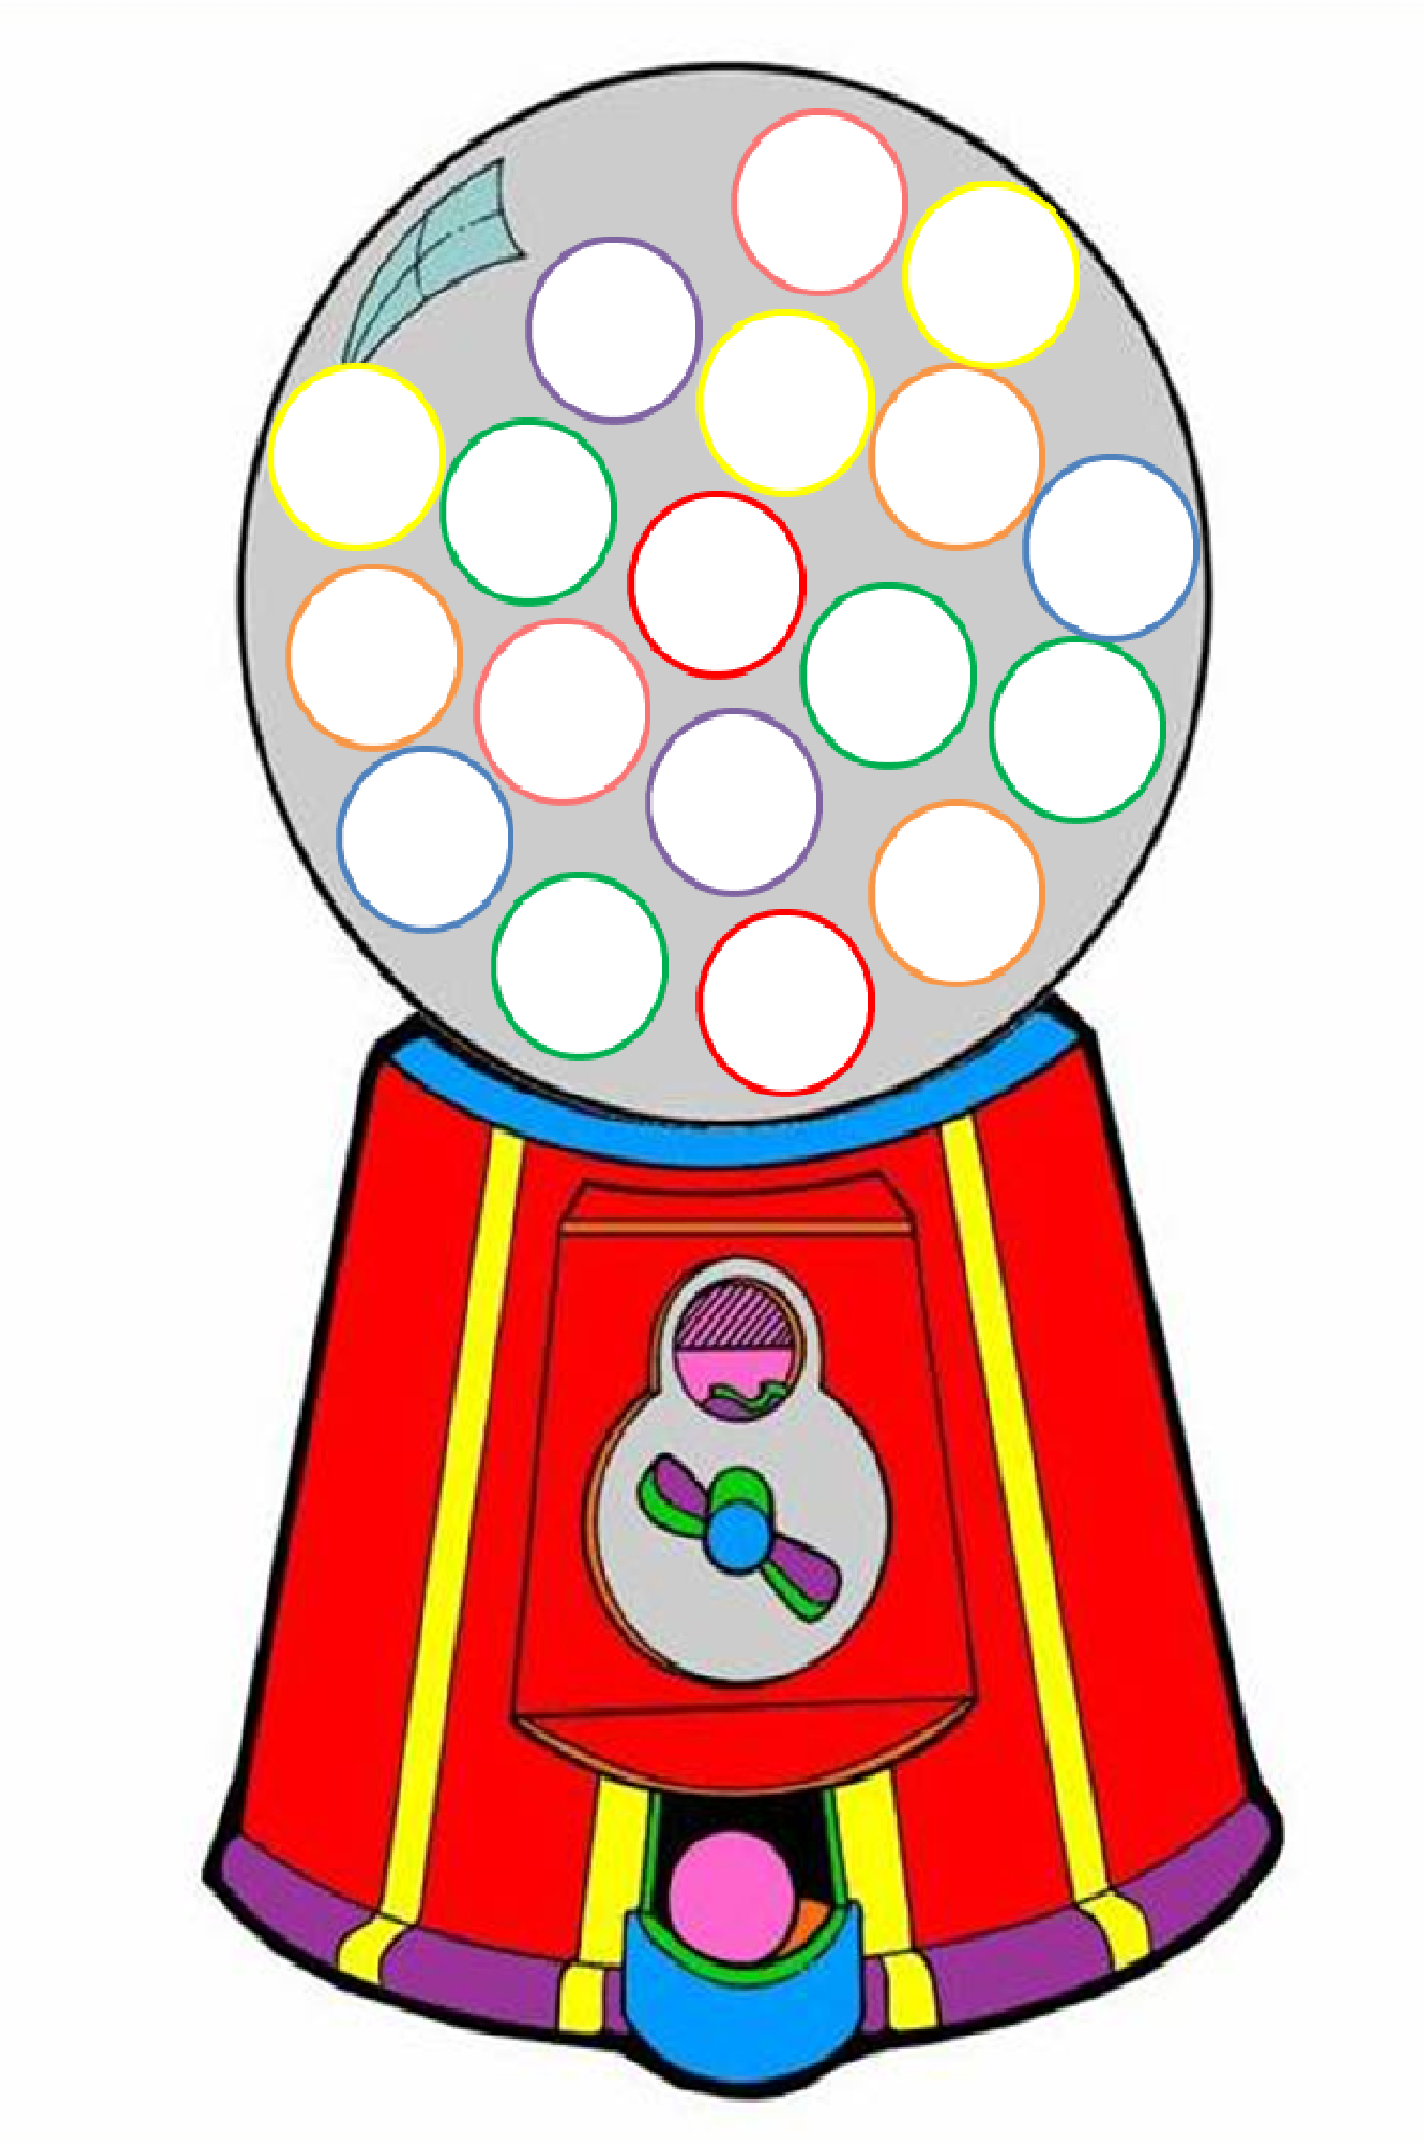 Worksheets Free Printable Visual Perceptual Worksheets worksheets and printable resources superior therapy connections gum ball machine picture